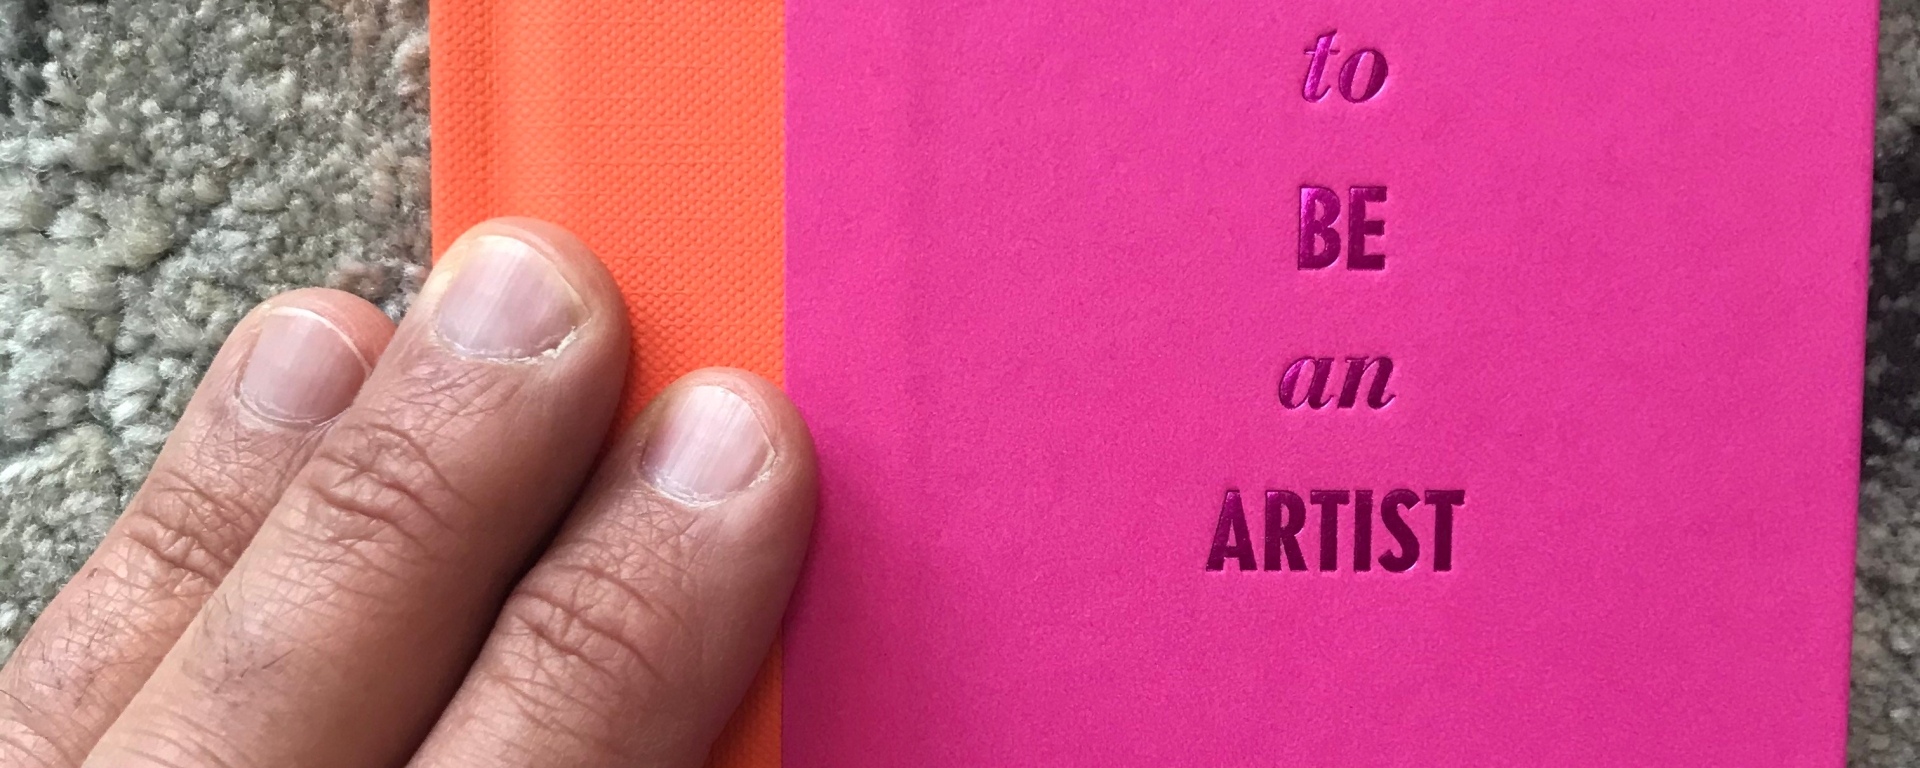 Review: How to be an artist by Jerry Saltz